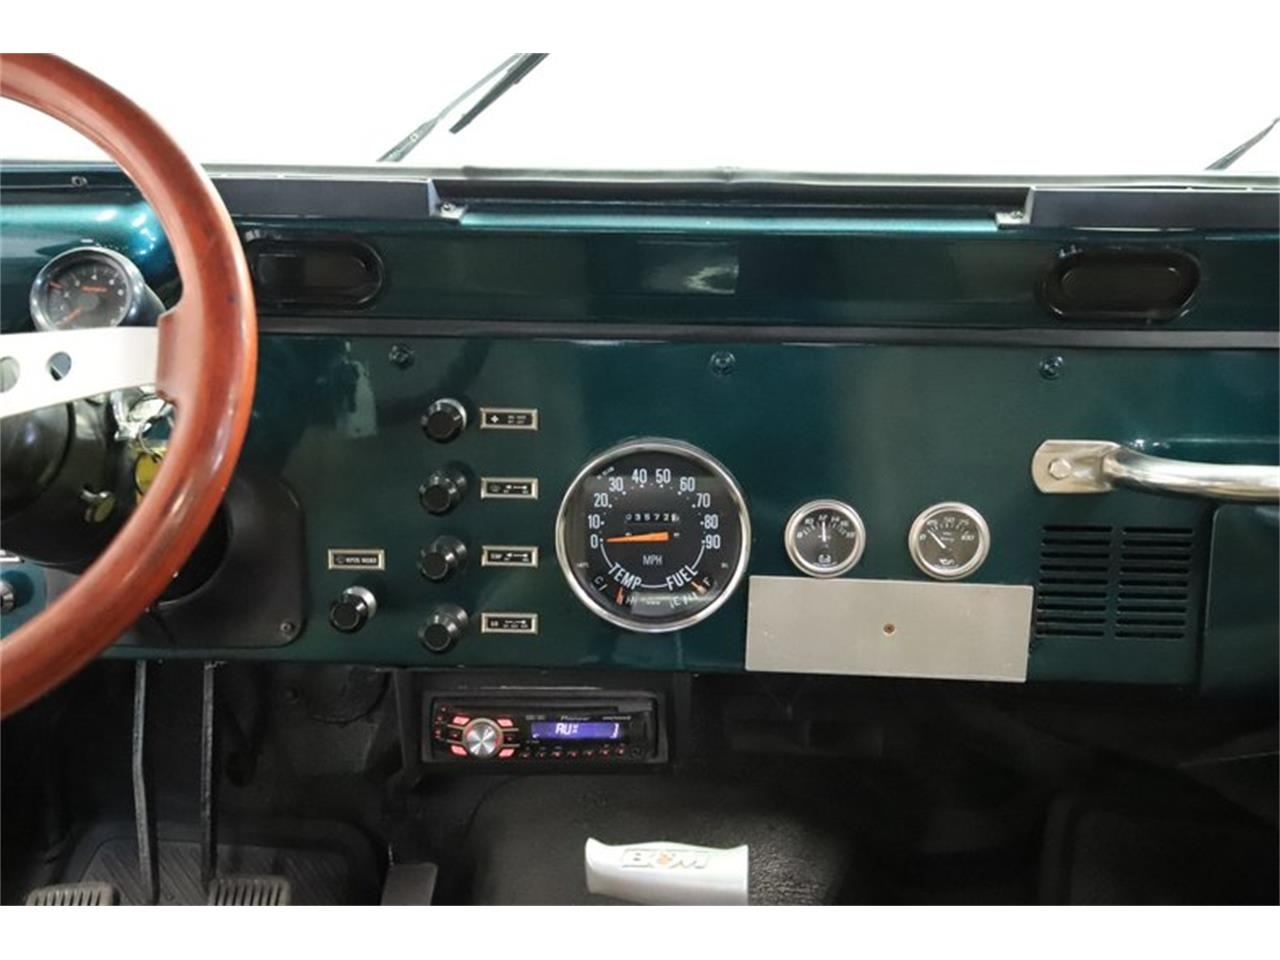 Large Picture of 1976 Jeep CJ5 located in Mesa Arizona - $16,995.00 Offered by Streetside Classics - Phoenix - Q32M